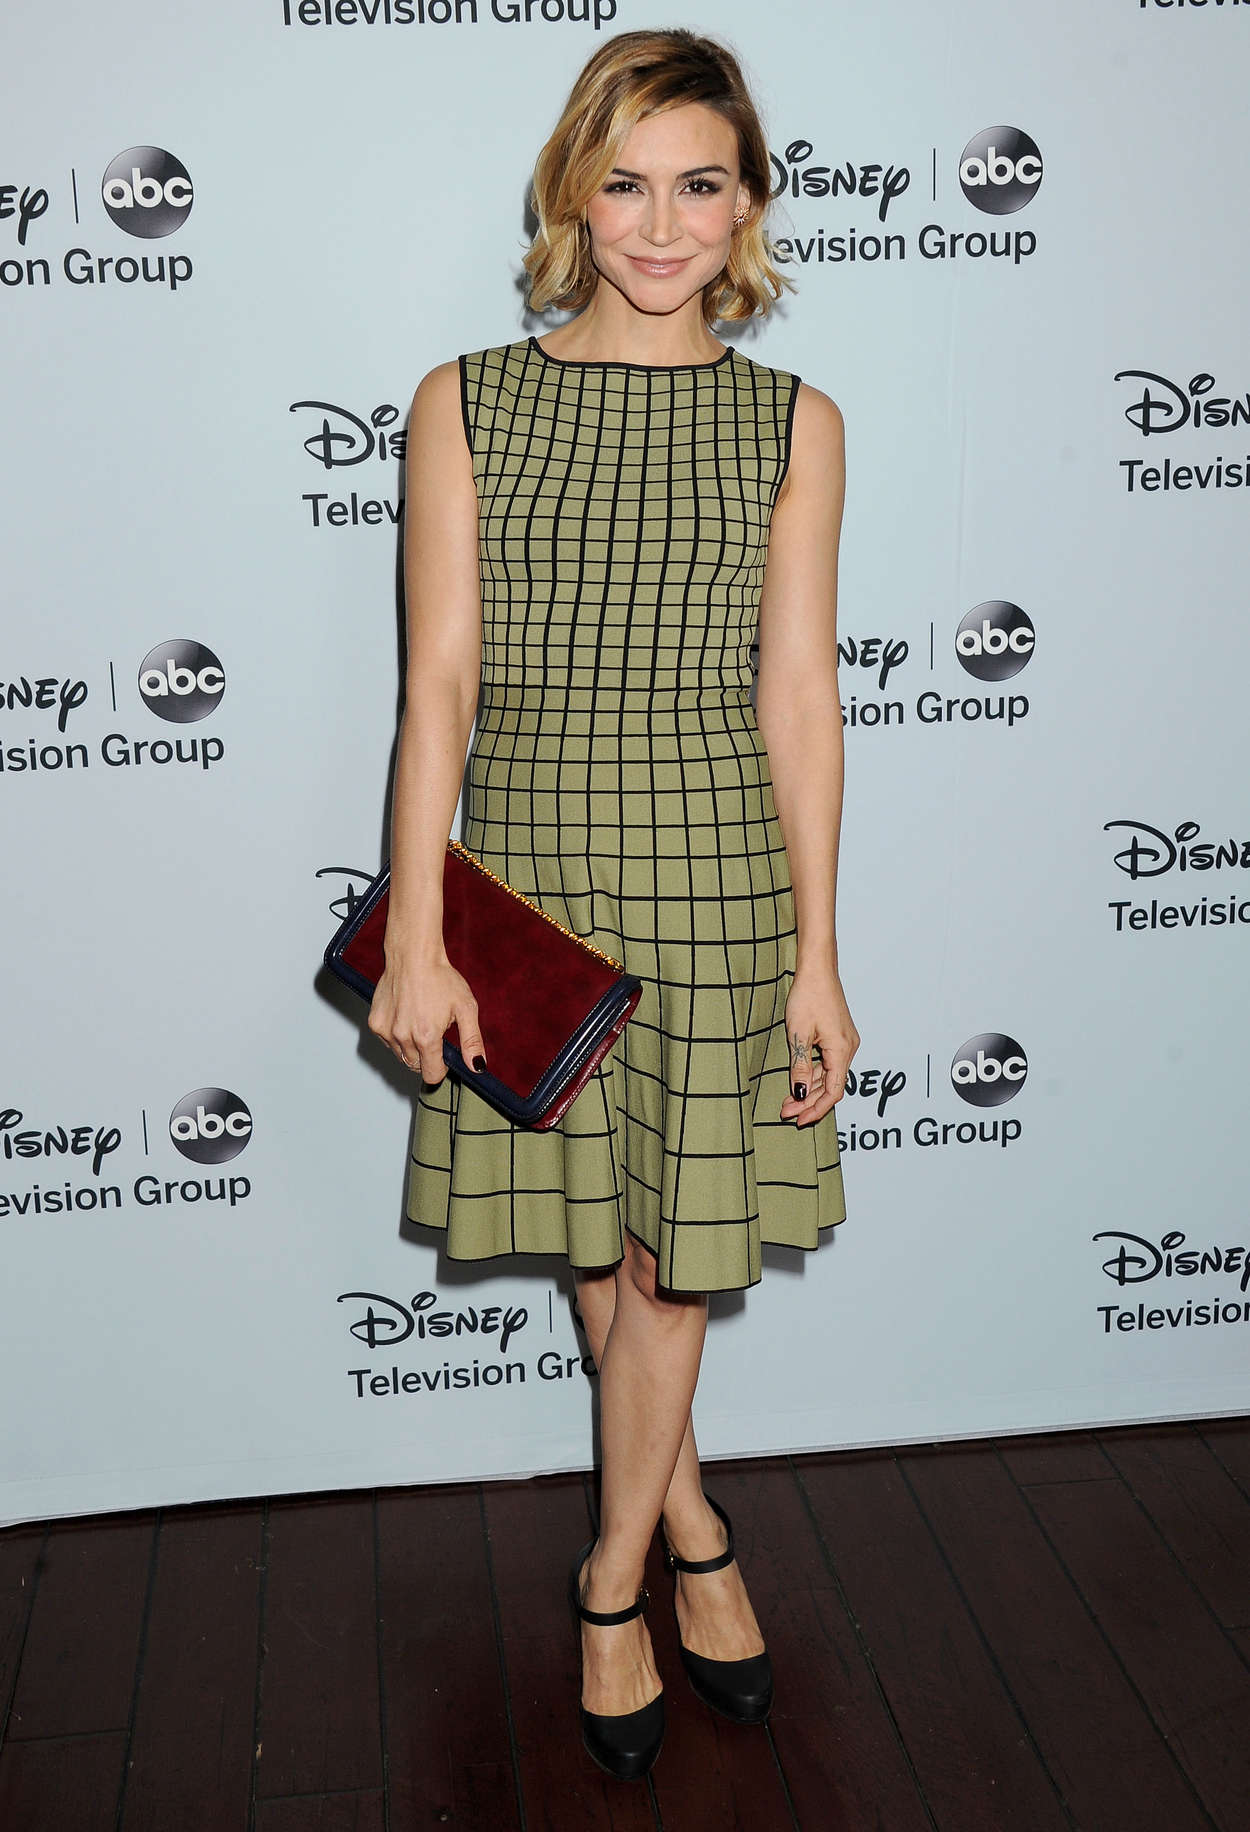 samaire armstrong twittersamaire armstrong instagram, samaire armstrong 2017, samaire armstrong arrow, samaire armstrong 2016, samaire armstrong facebook, samaire armstrong kevin zegers, samaire armstrong gallery, samaire armstrong jason christopher, samaire armstrong filmleri, samaire armstrong music video, samaire armstrong net worth, samaire armstrong 2015, samaire armstrong the oc, samaire armstrong 2014, samaire armstrong twitter, samaire armstrong wdw, samaire armstrong fan site